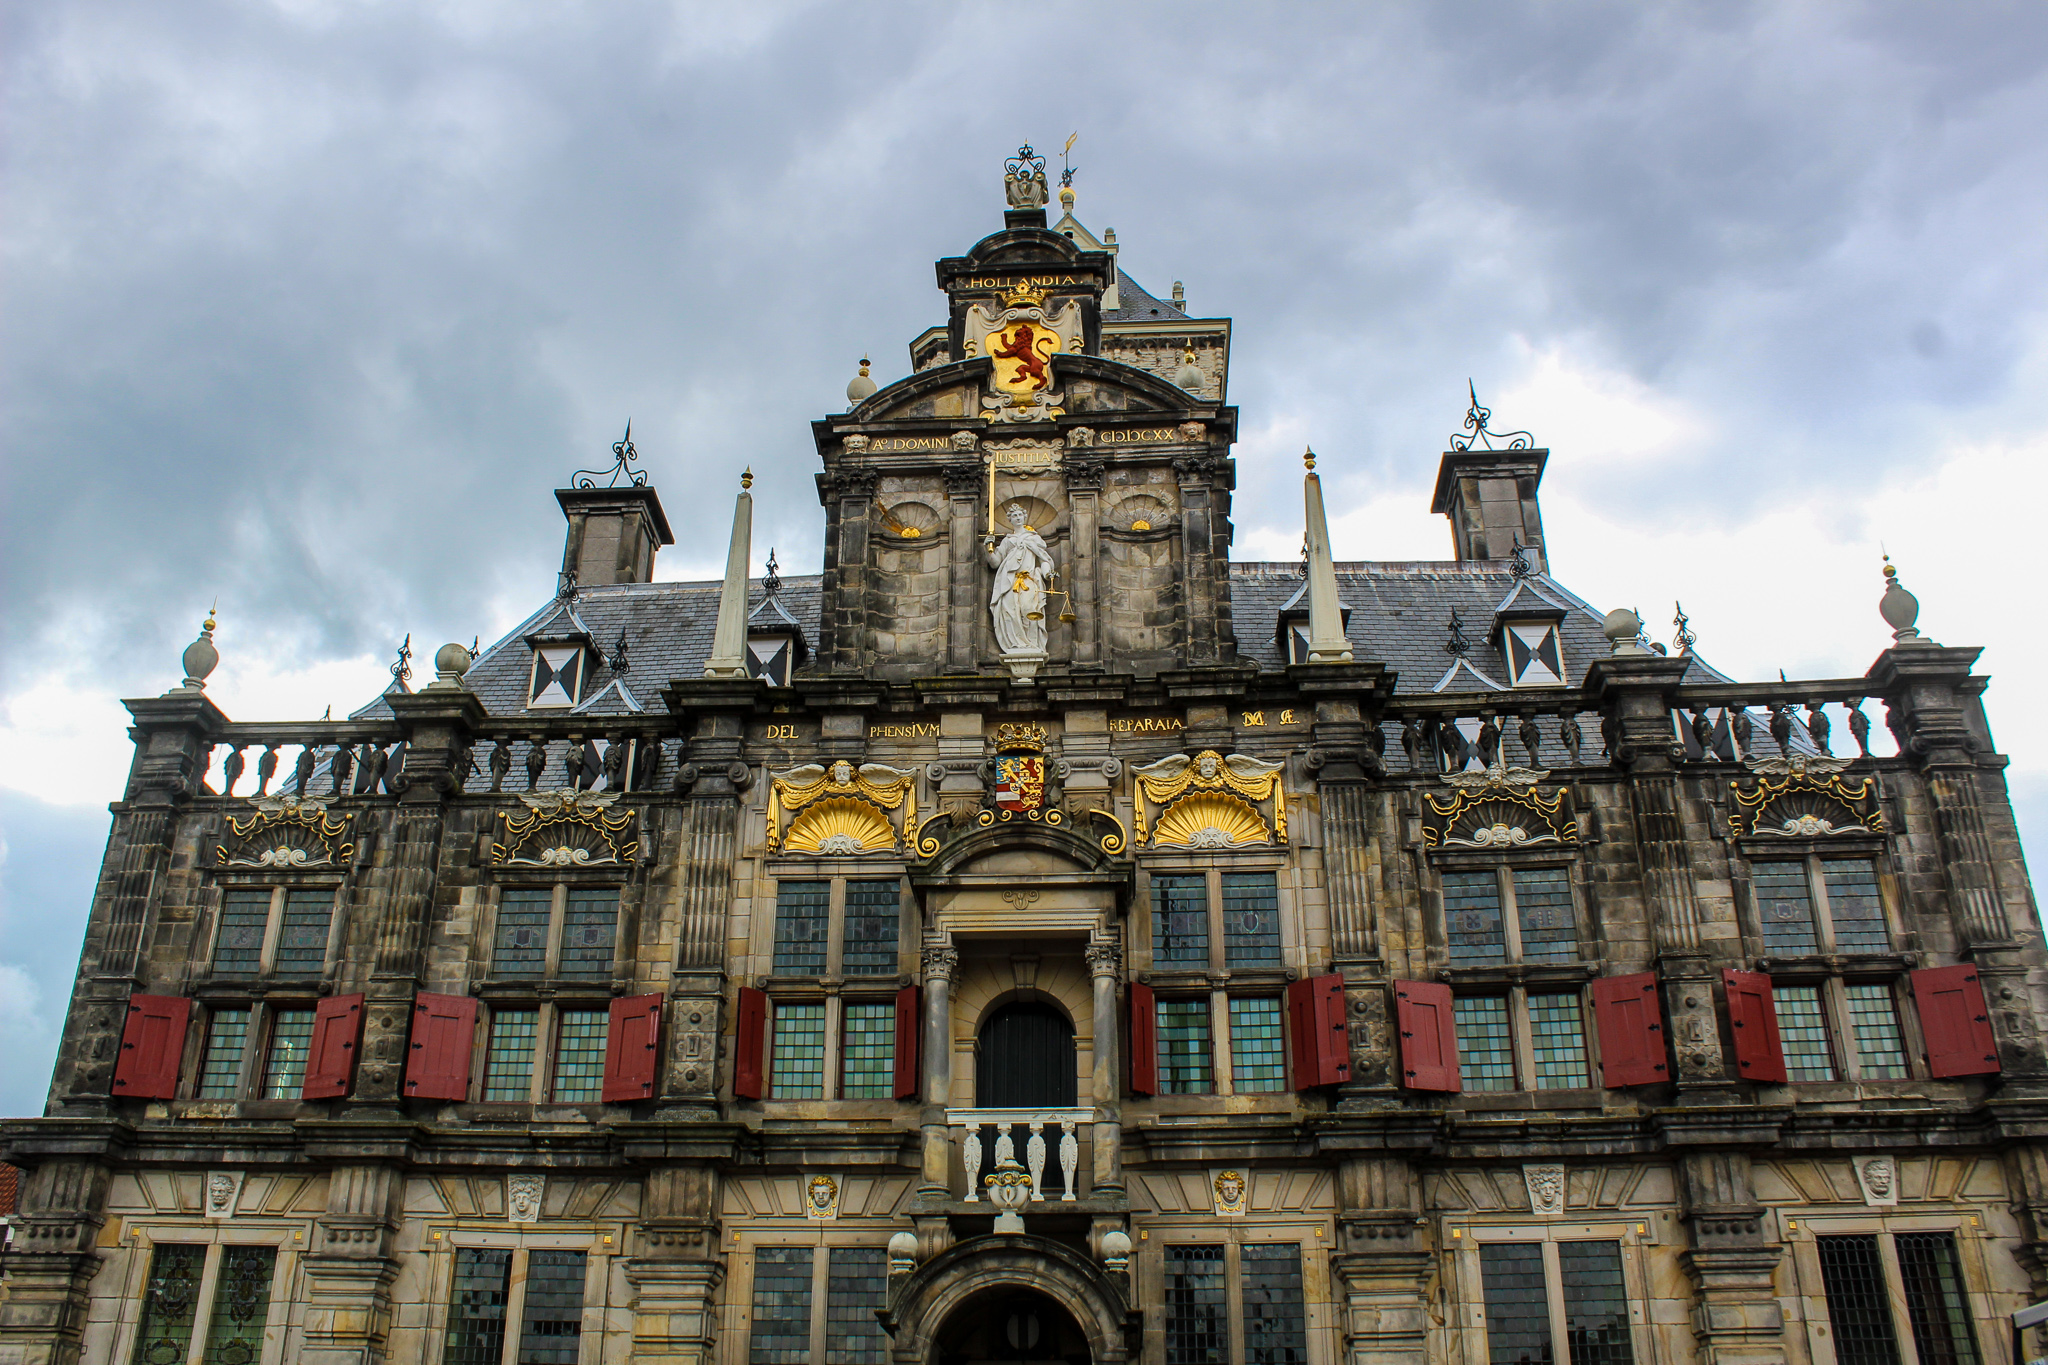 things to do in delft netherlands - see the city hall